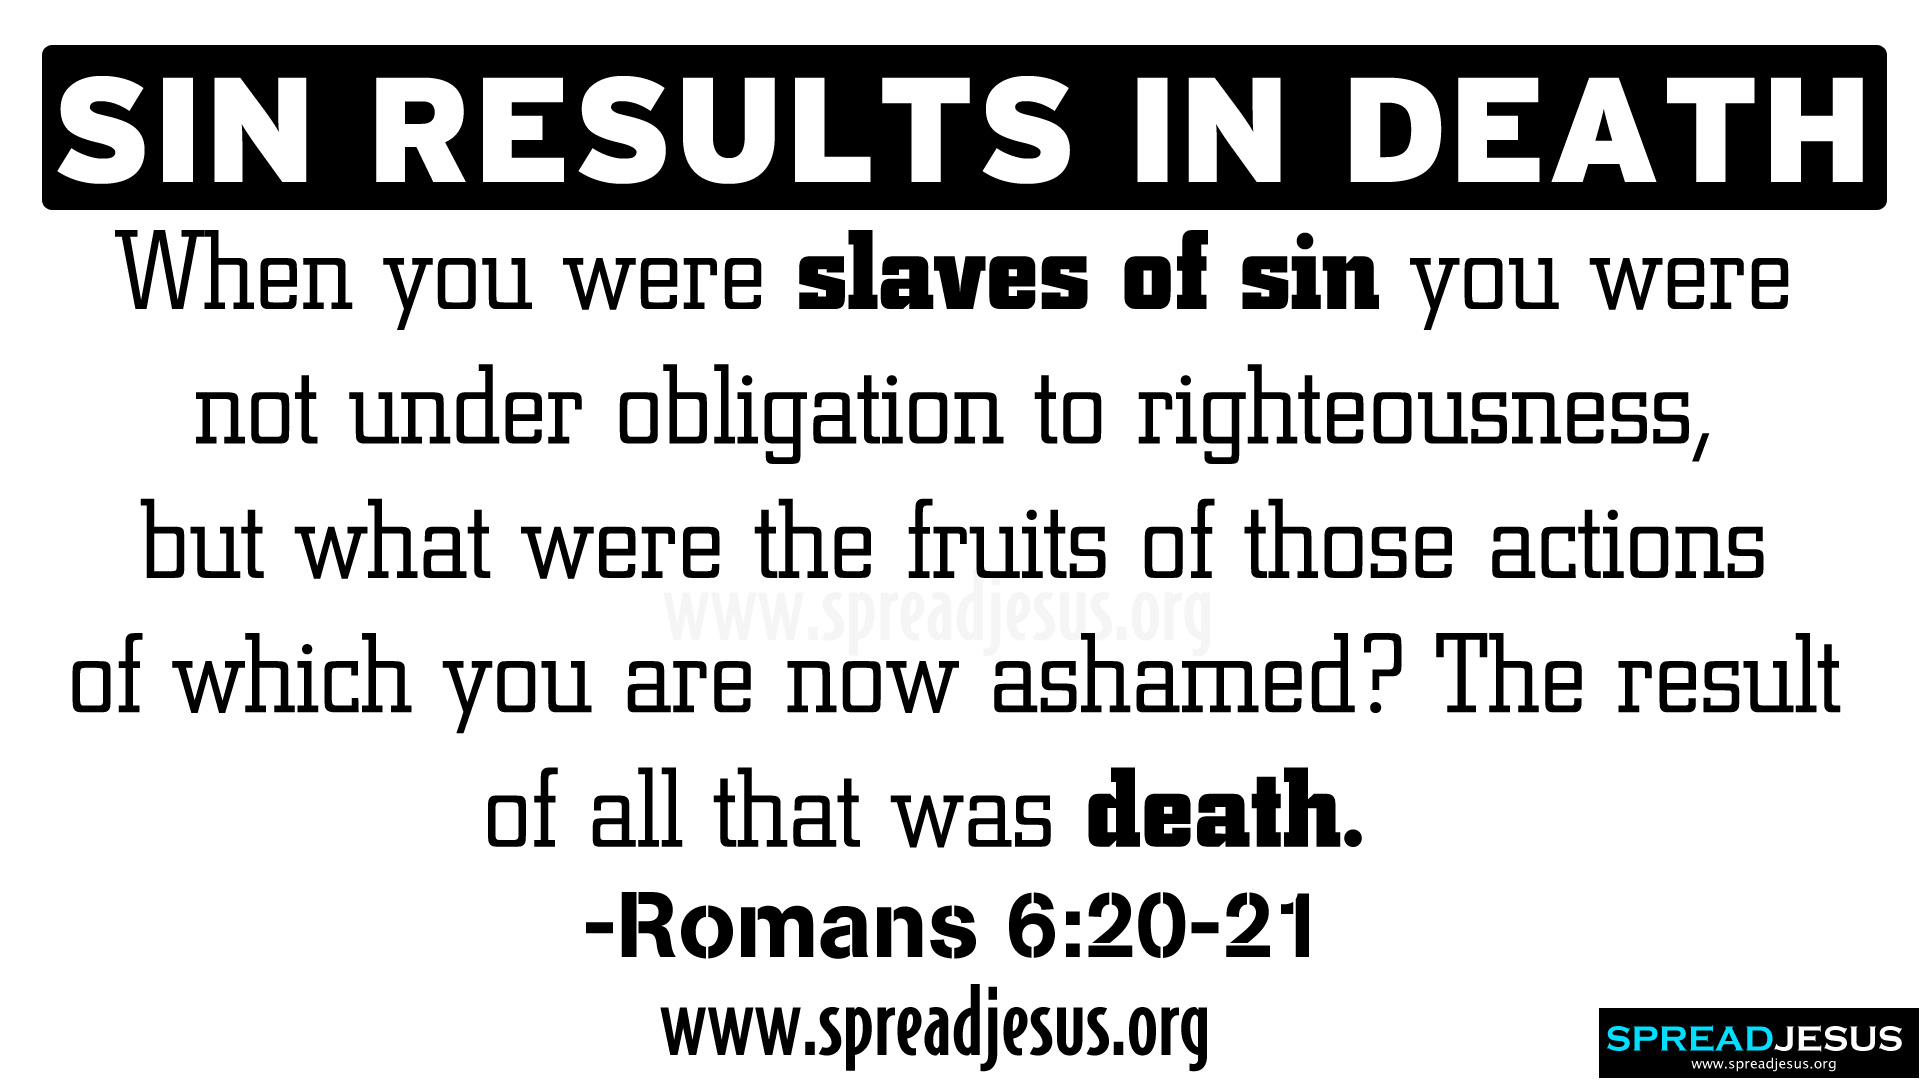 SIN RESULTS IN DEATH  BIBLE QUOTES HD-WALLPAPERS-ROMANS 6:20-21